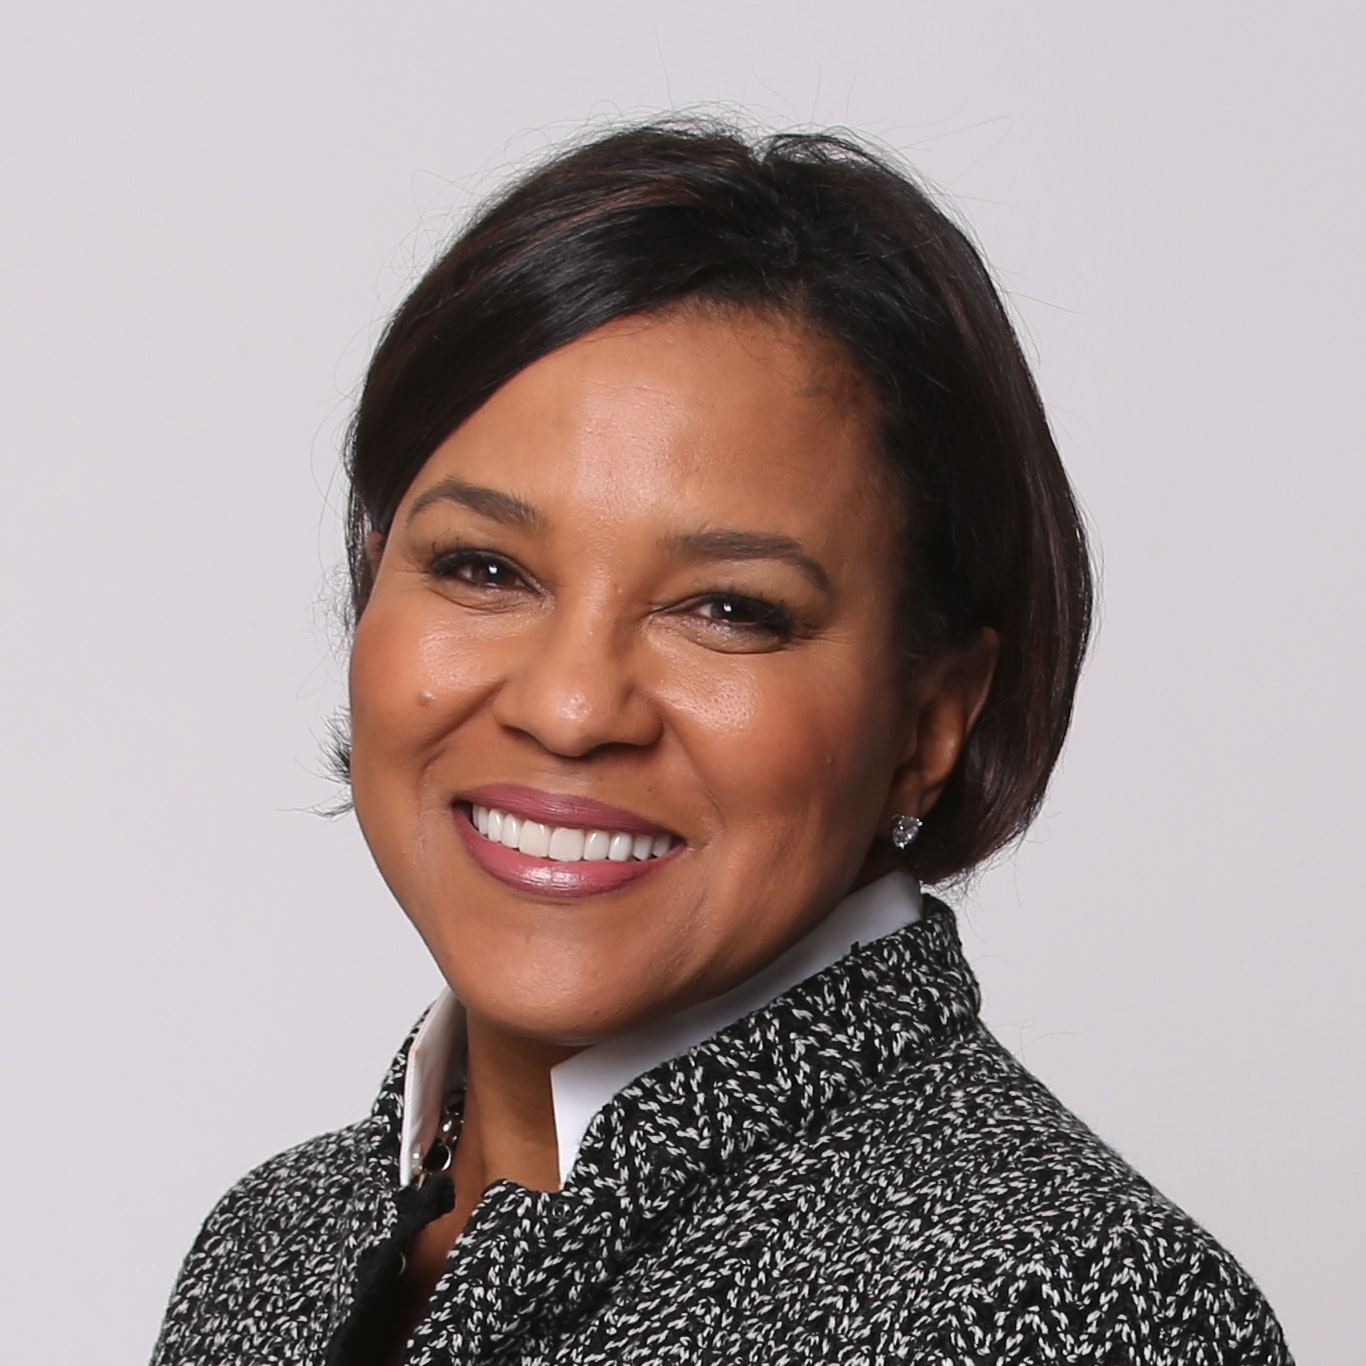 Starbucks COO Rosalind Brewer to be Next CEO of Walgreens